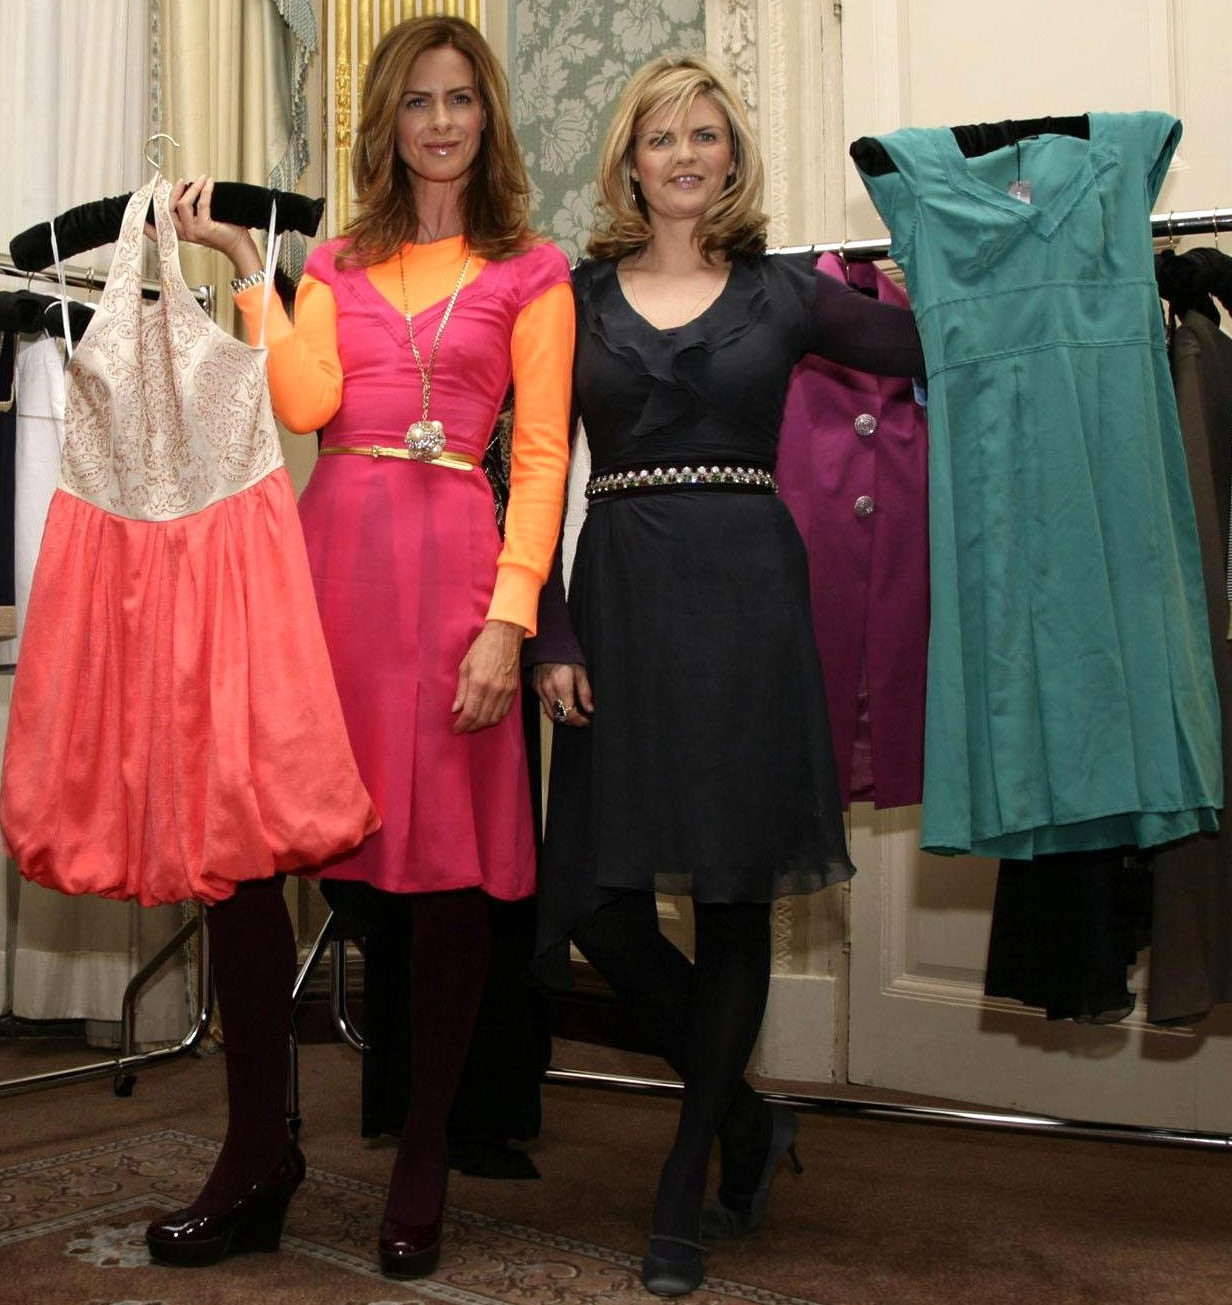 Trinny Woodall (left) and Susannah Constantine at the launch of the Littlewoods Direct Spring/Summer Collection in London in 2008. (Yui Mok/PA)